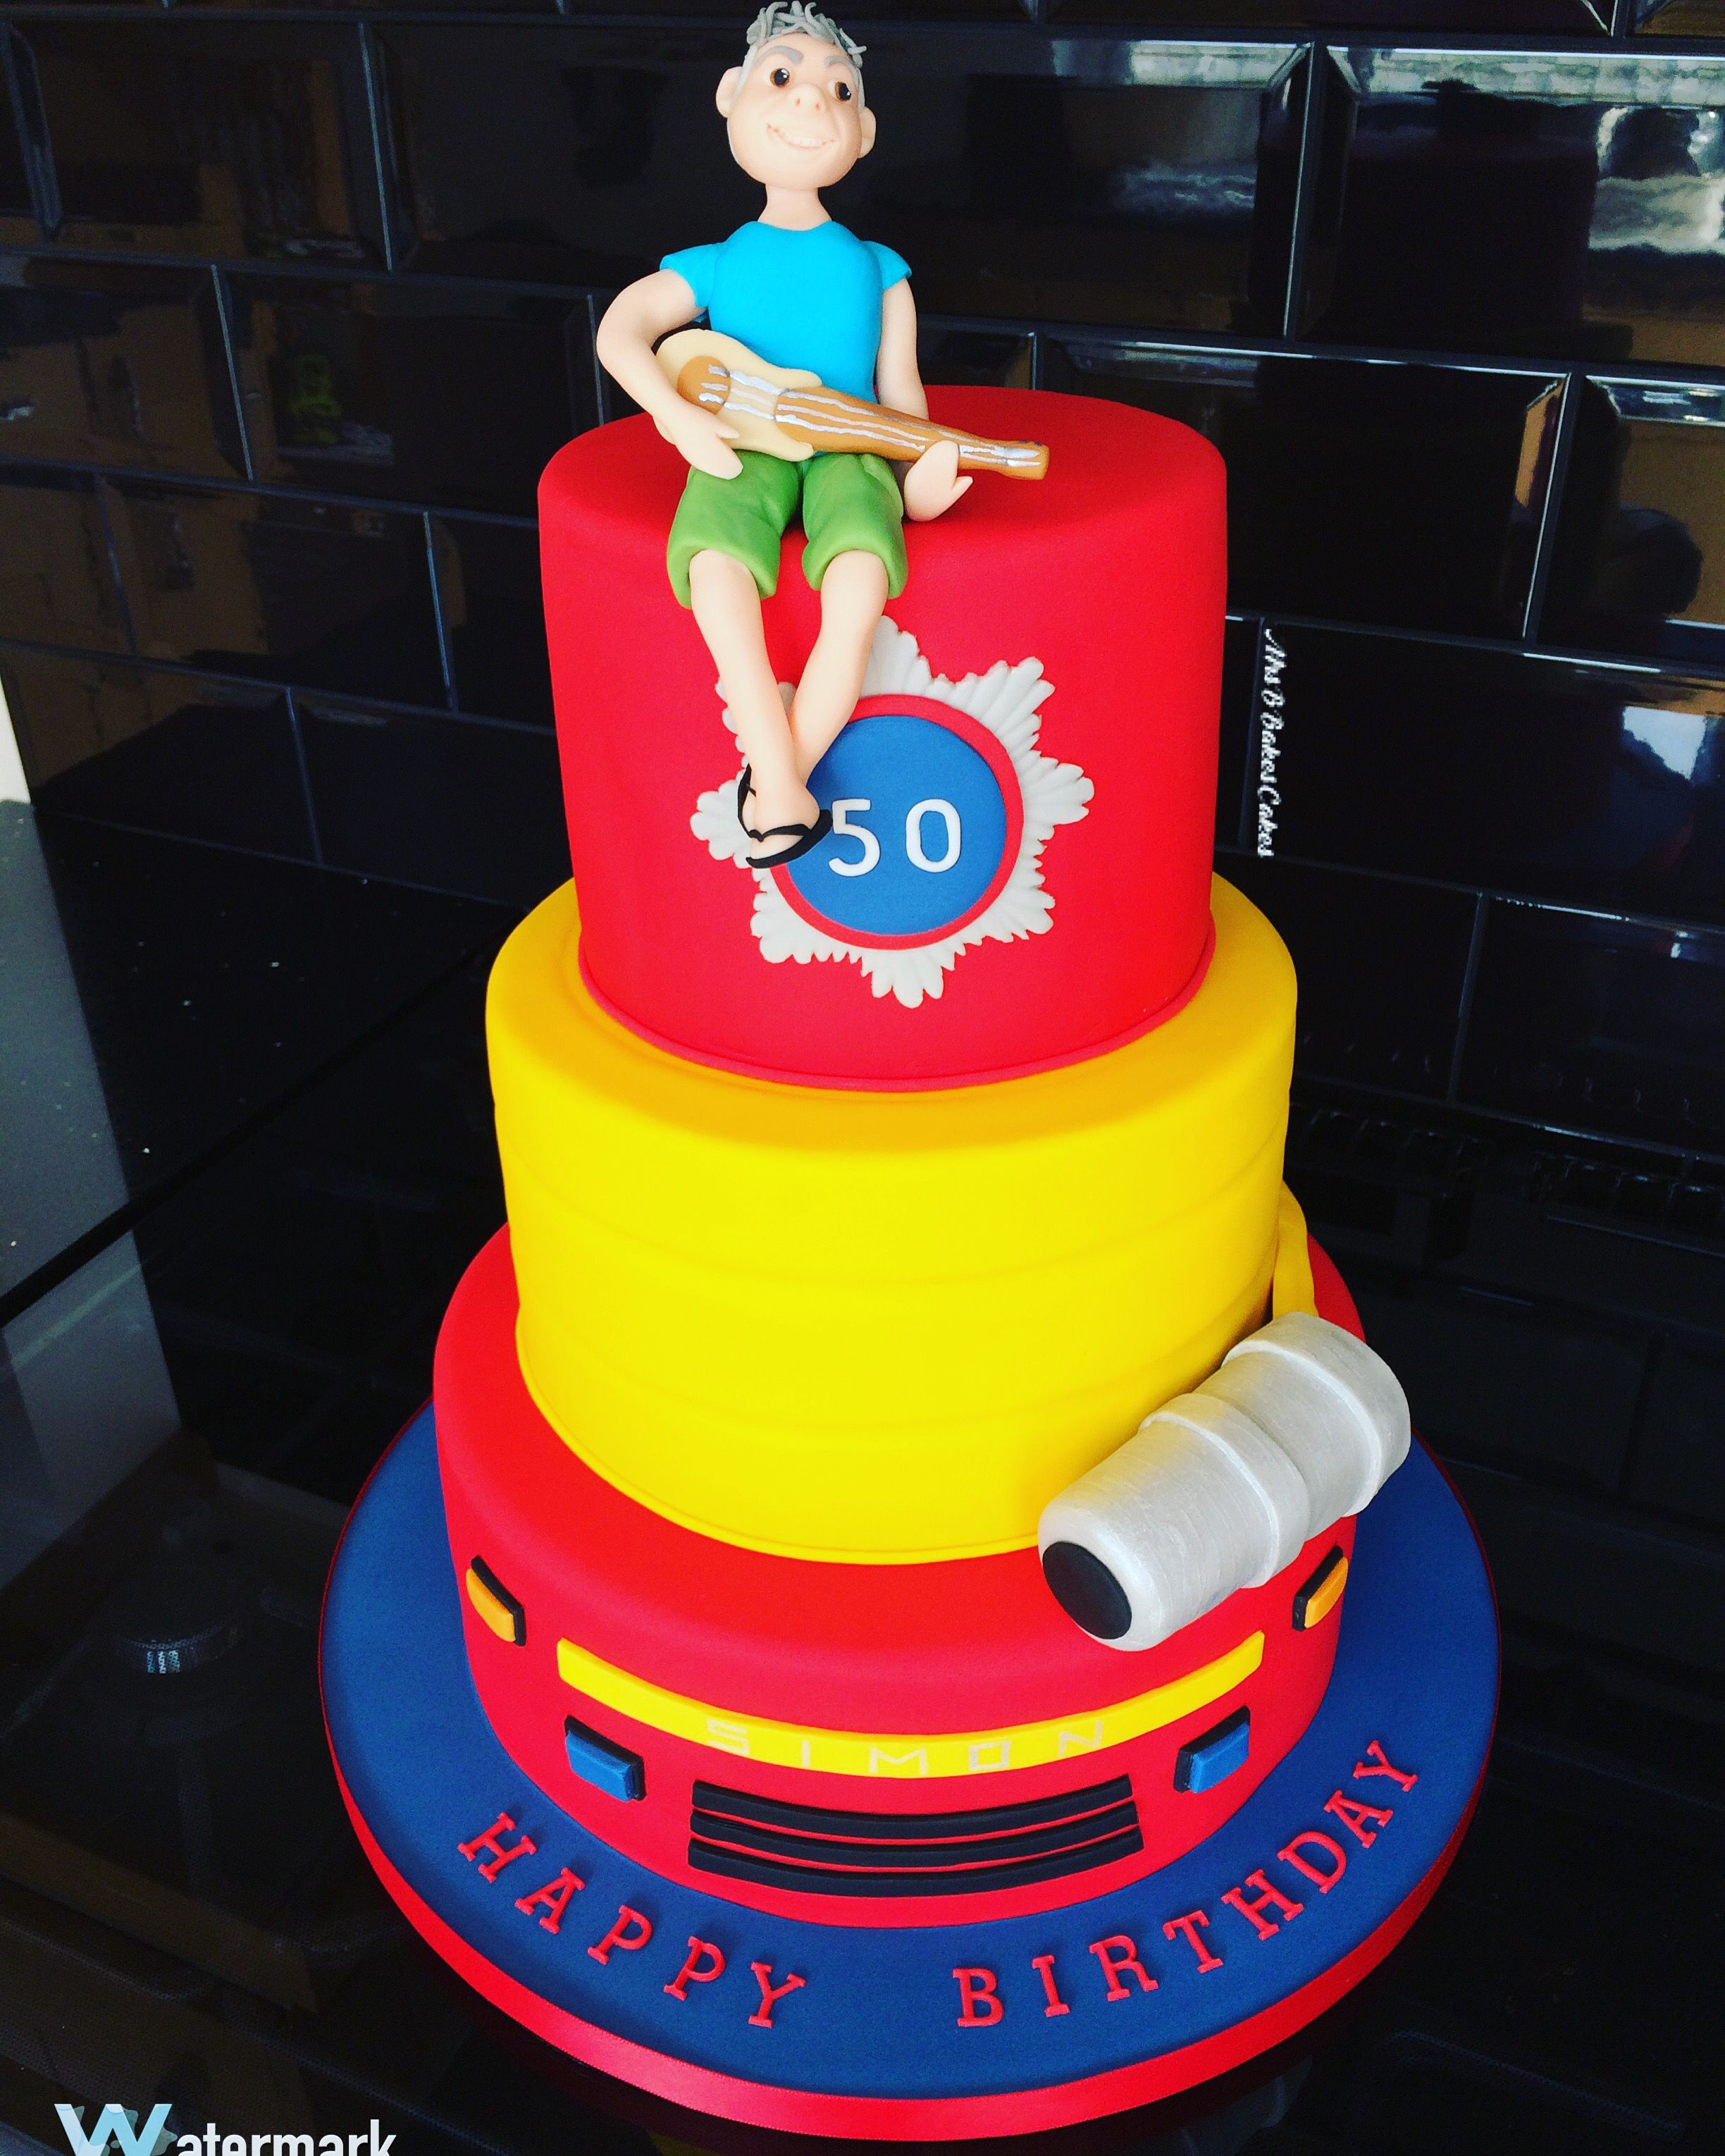 Fireman Birthday Cake For An Adult Entirely Handcrafted Entirely